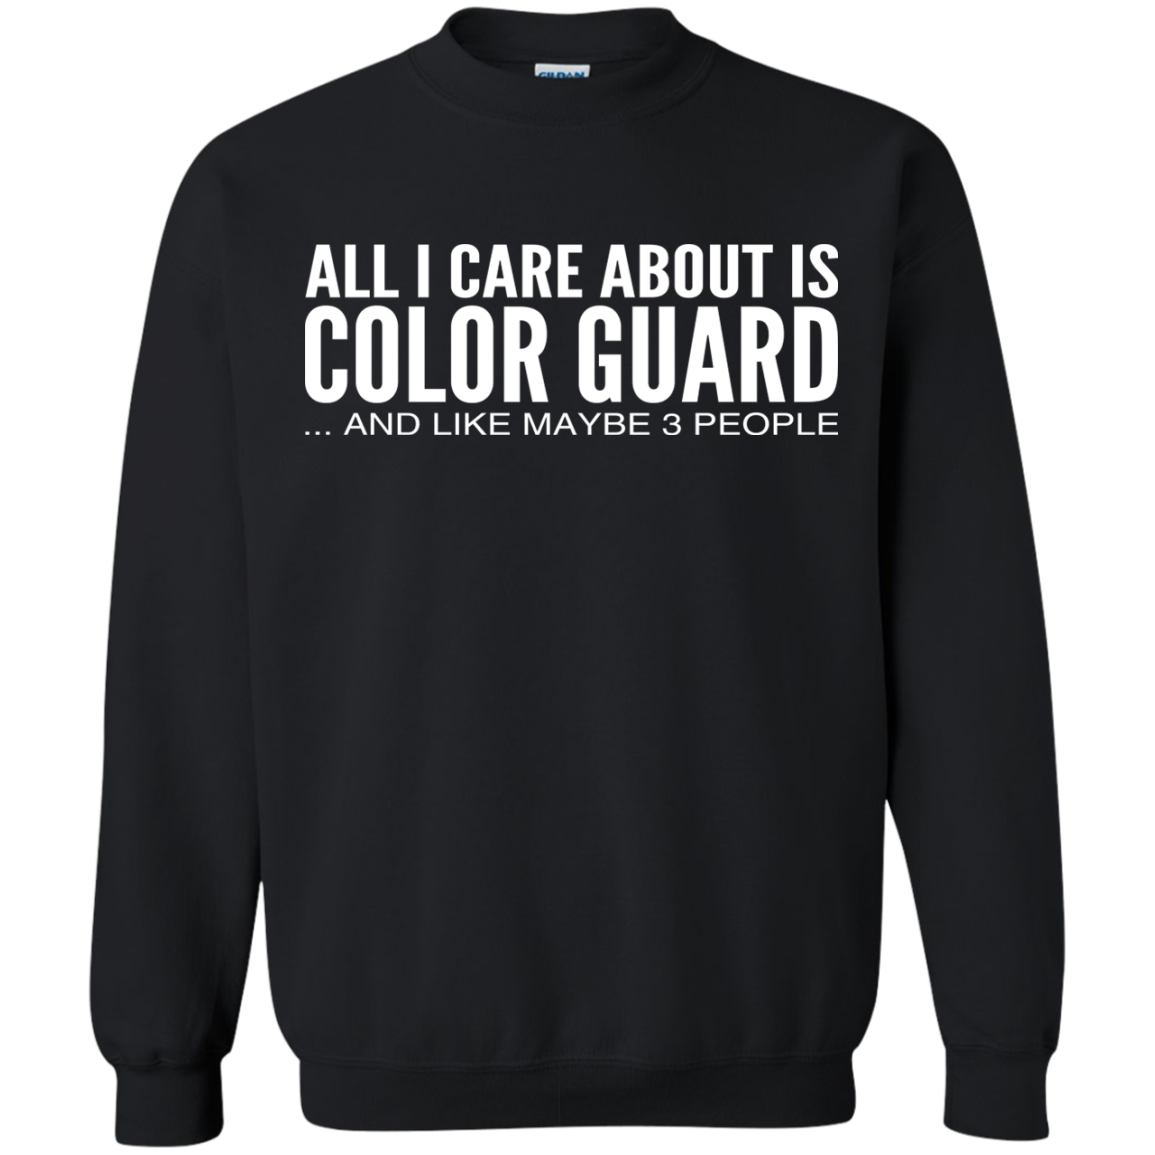 All I Care About Is Color Guard And Like Maybe 3 People Sweatshirts